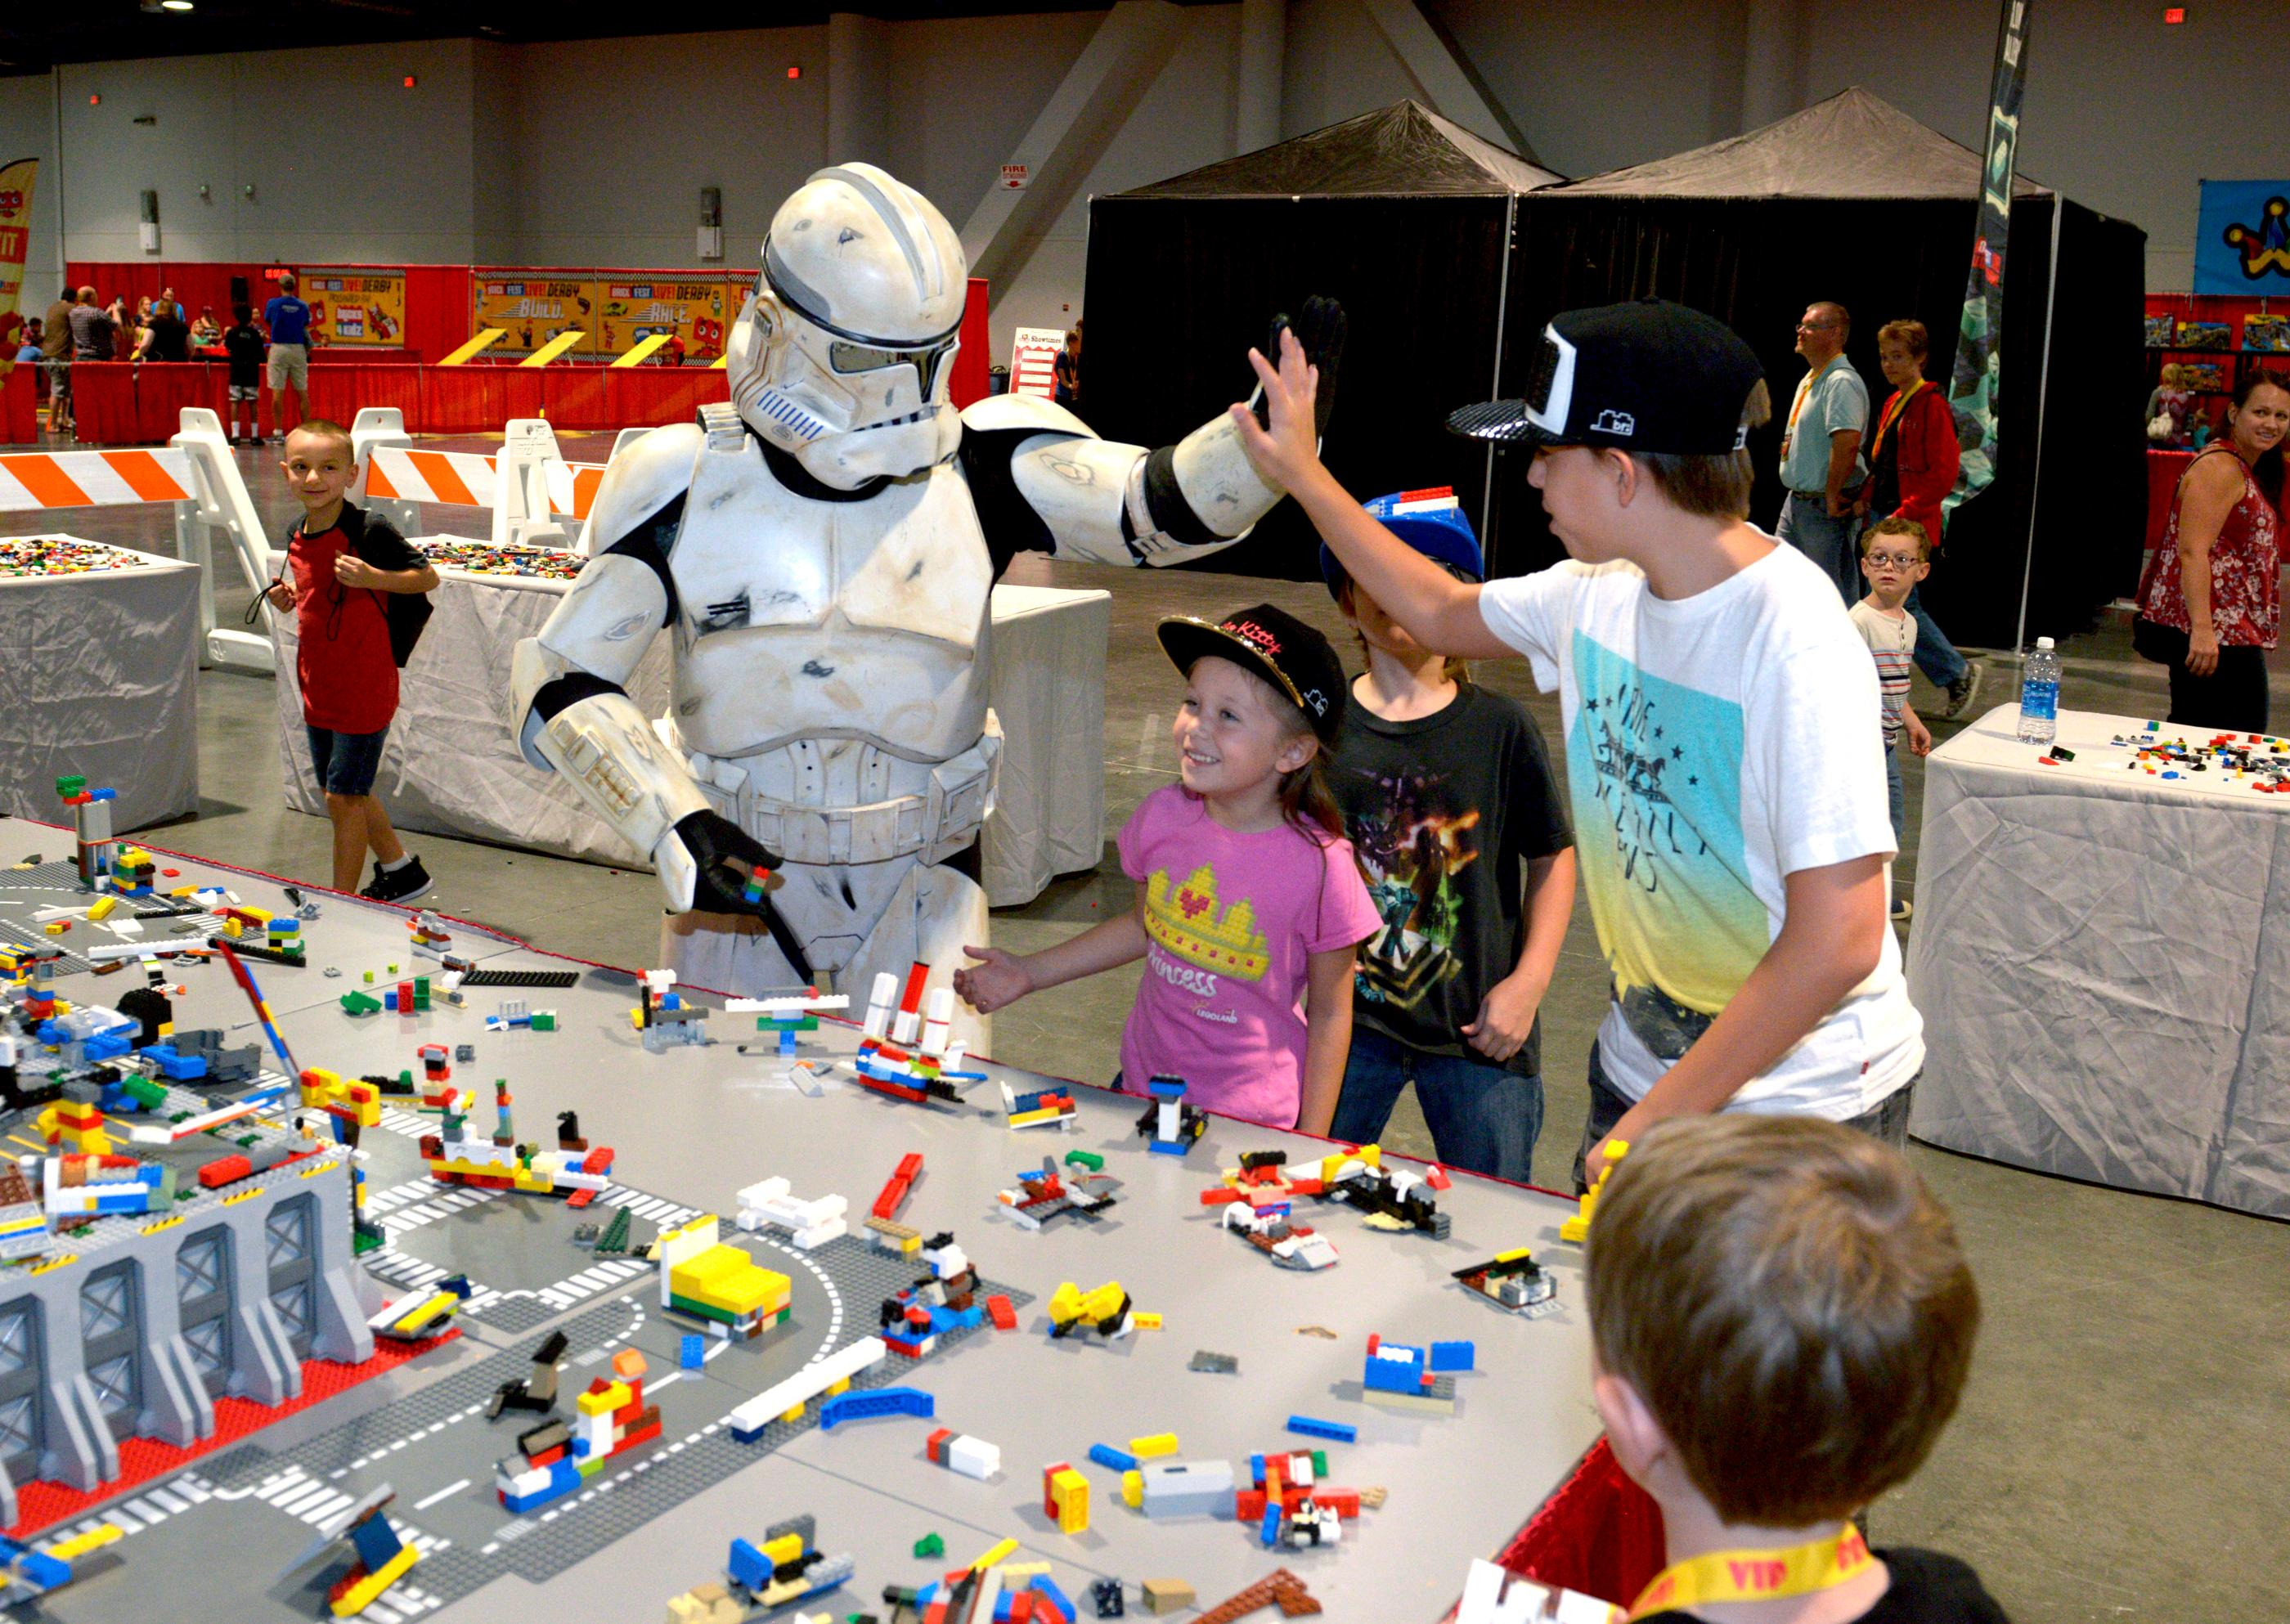 A Galactic Empire Stormtrooper helps put together rockets, space ships and other-worldly vehicles in the Space Station area of Brick Fest Live Lego Fan Experience at the Las Vegas Convention Center, September 9, 2017. [Glenn Pinkerton/Las Vegas News Bureau]